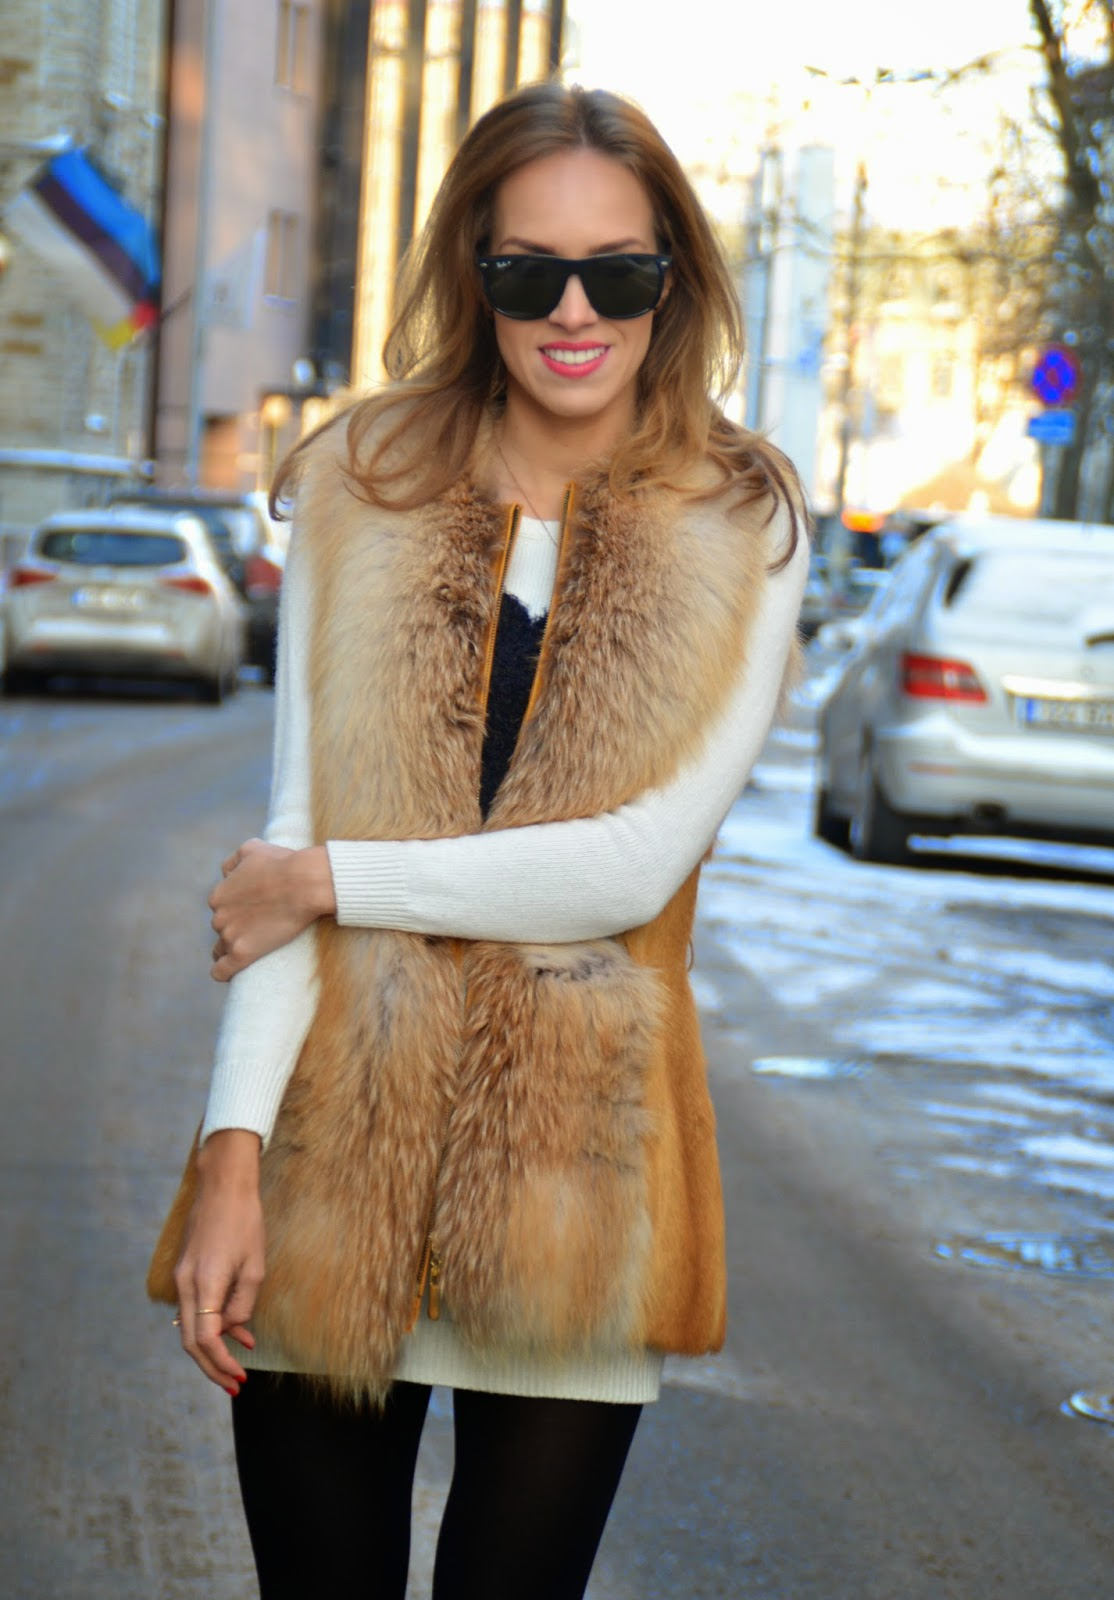 red-fox-fur-vest-white-long-sleeve-mini-dress-outfit kristjaana mere